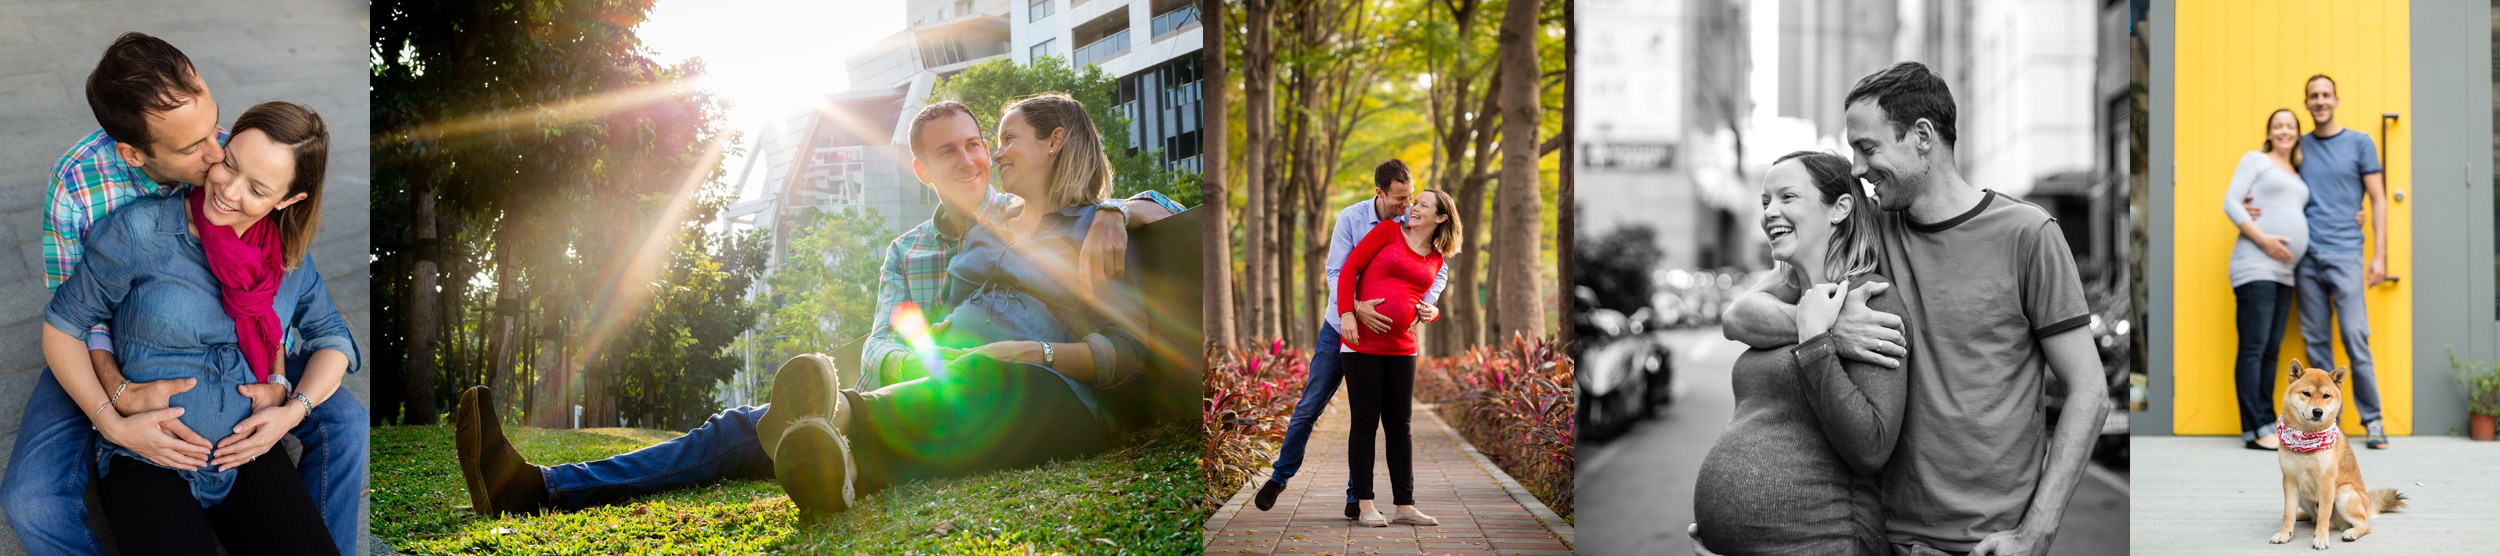 collage_of_urban_maternity_photos_with_dog_by_hunnicutt_photography.jpg